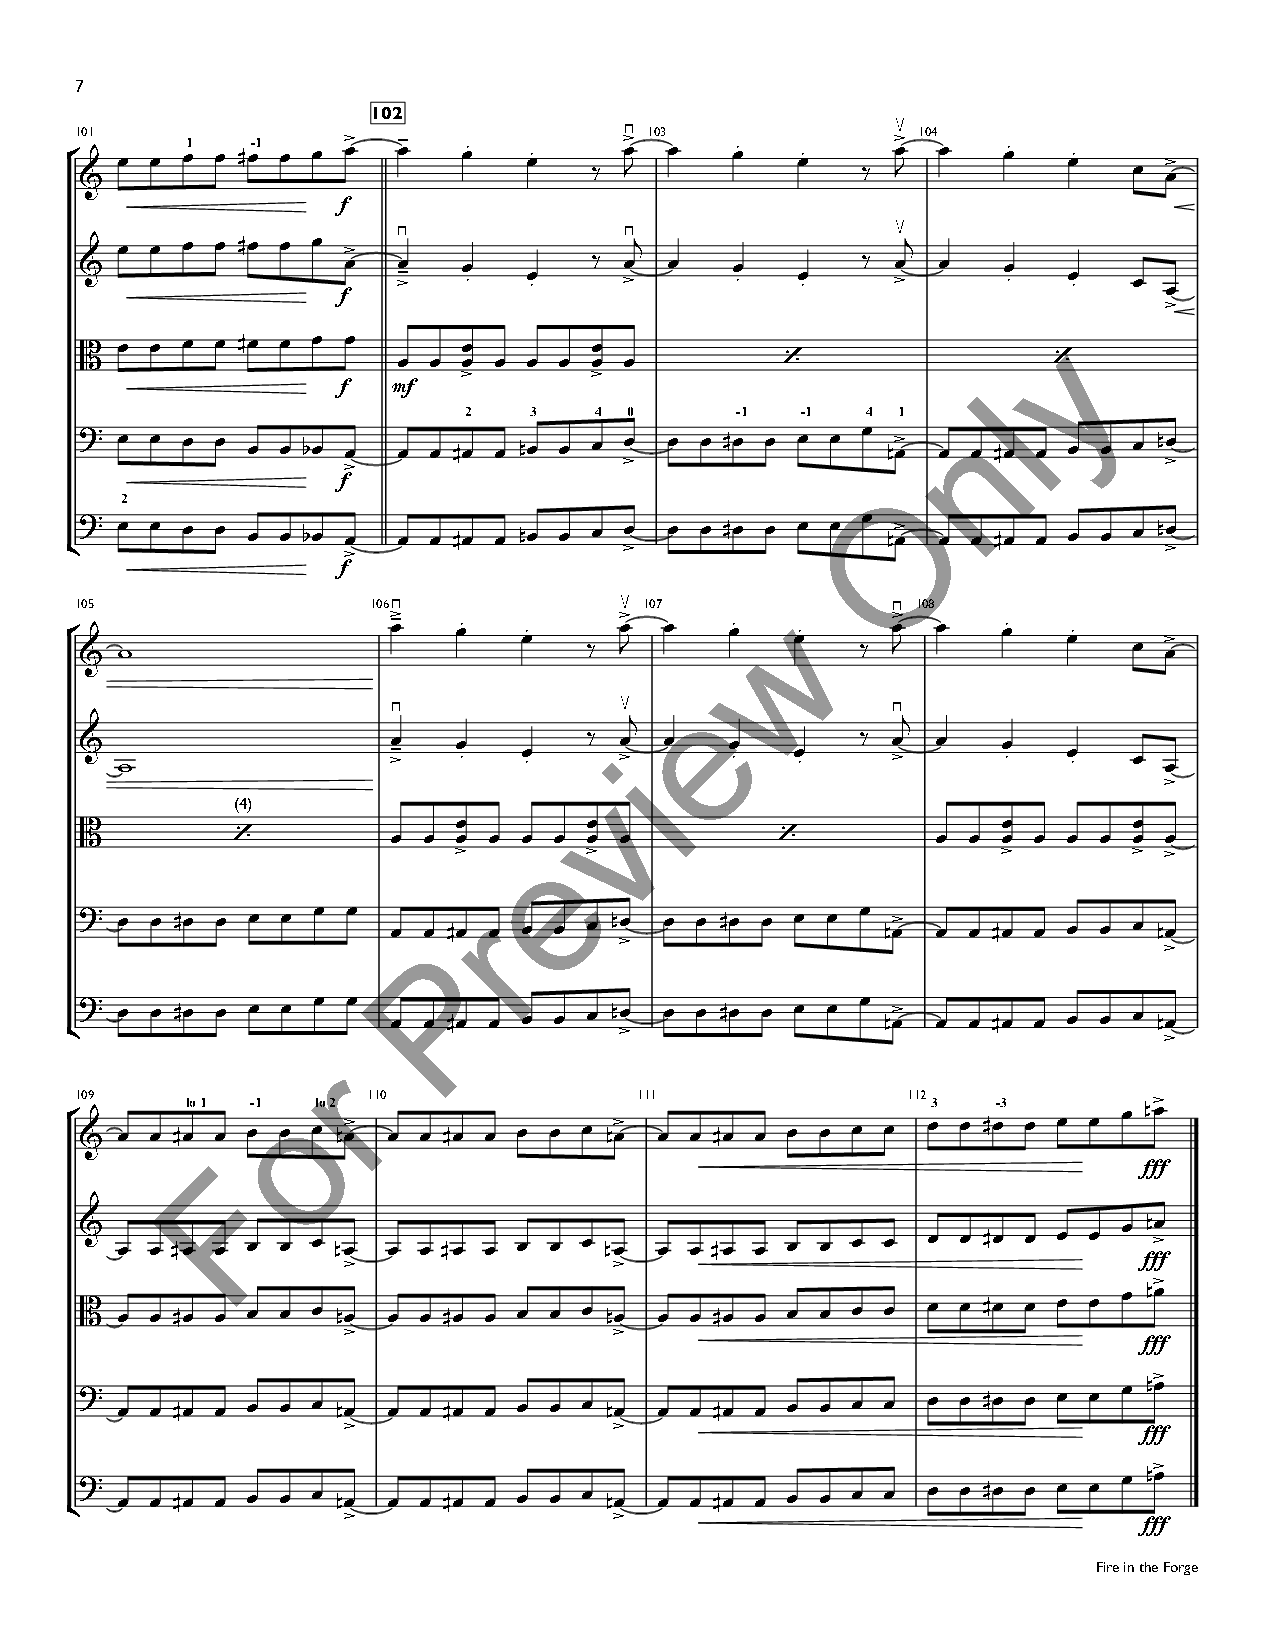 Fire in the Forge by Ted Allen| J.W. Pepper Sheet Music